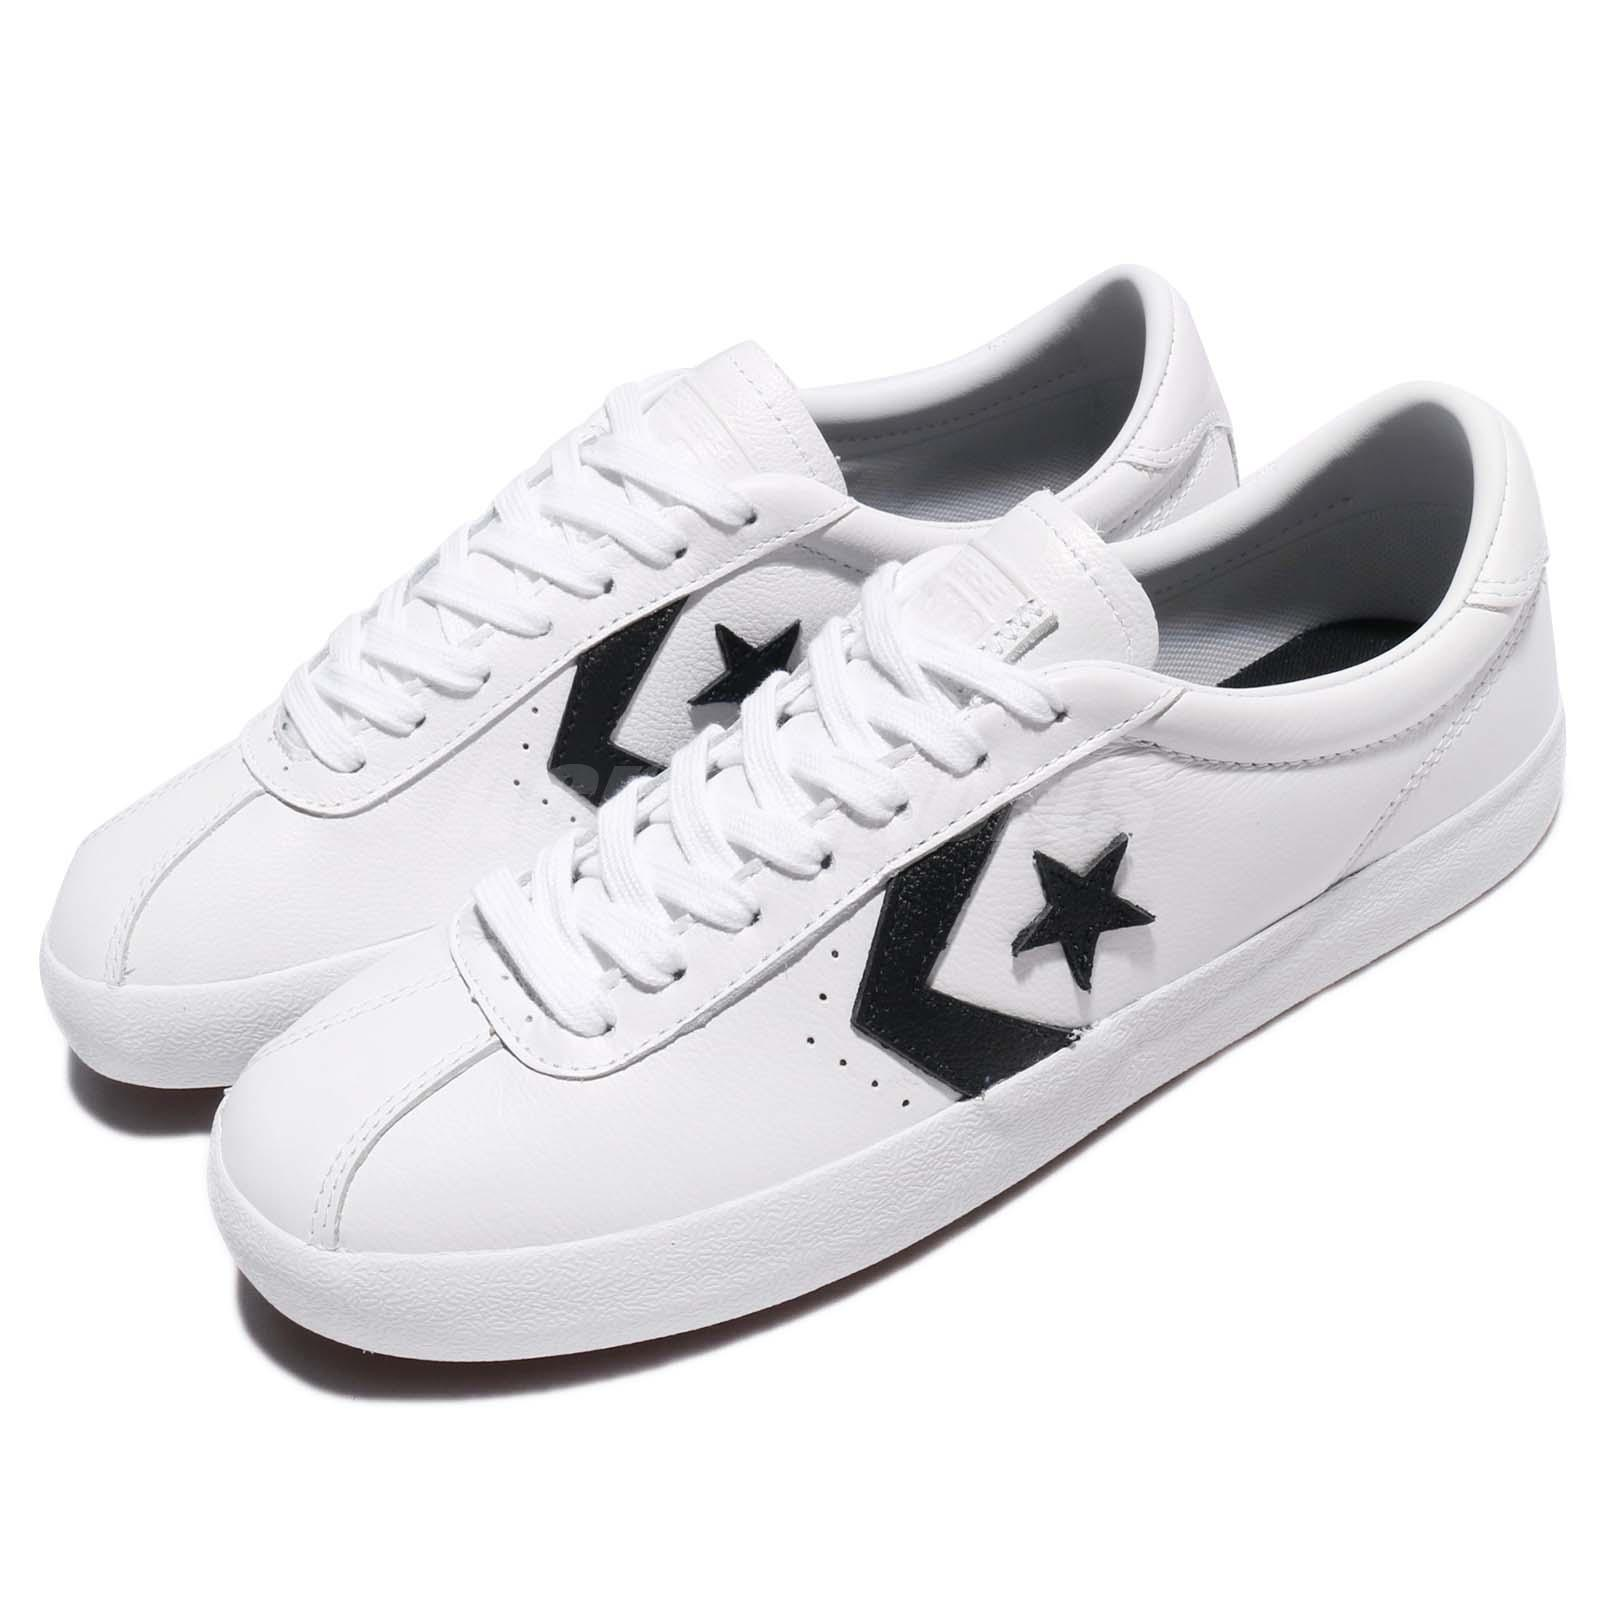 Details about Converse Breakpoint Low Top White Black Leather Men Sneakers  Shoes 157777C a598356bd3